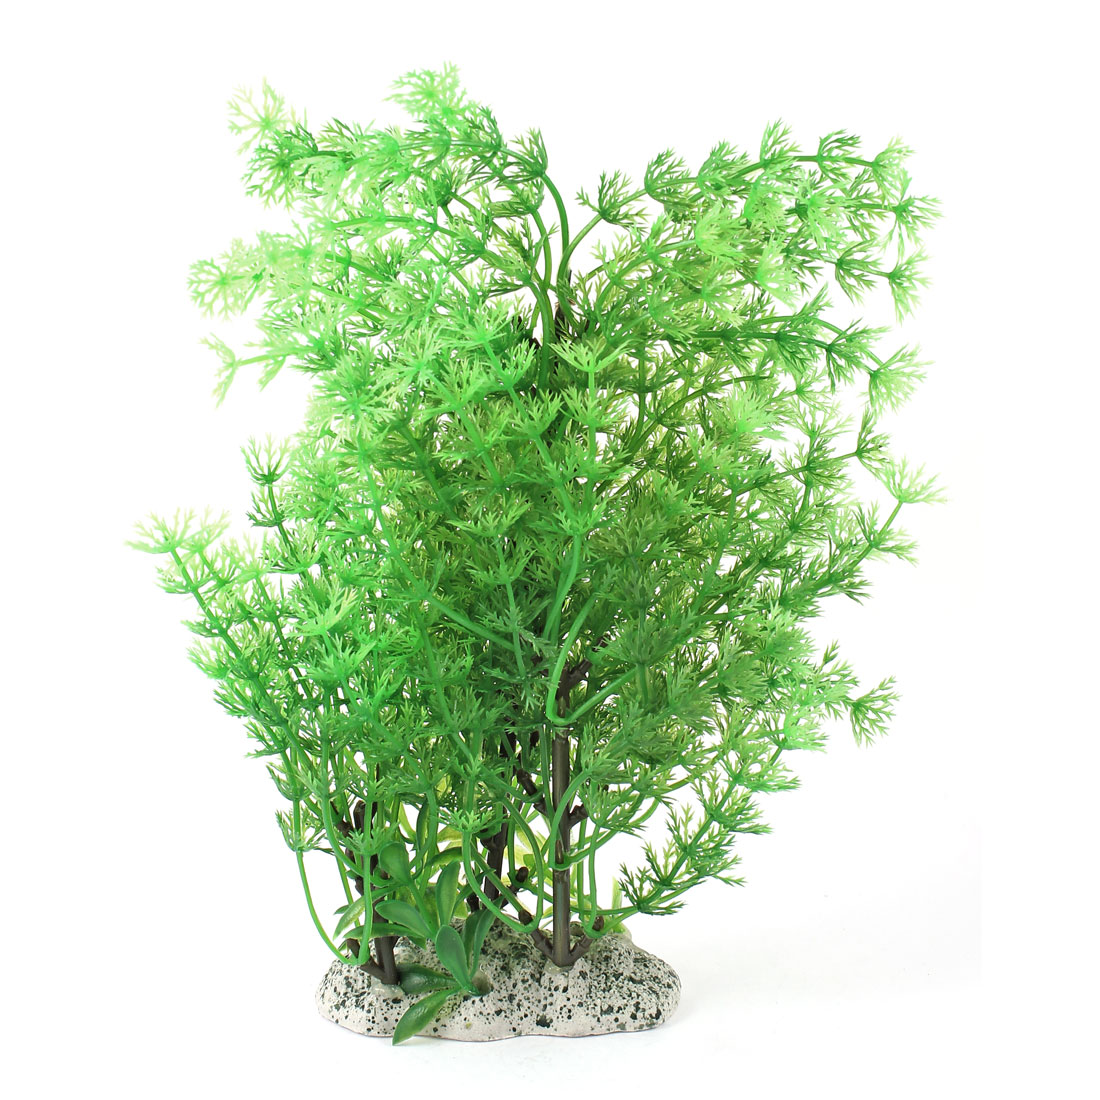 "Aquarium Fish Tank Ornament Landscaping Artificial Emulational Underwater Water Plant Grass Decor Green 8"" Height"